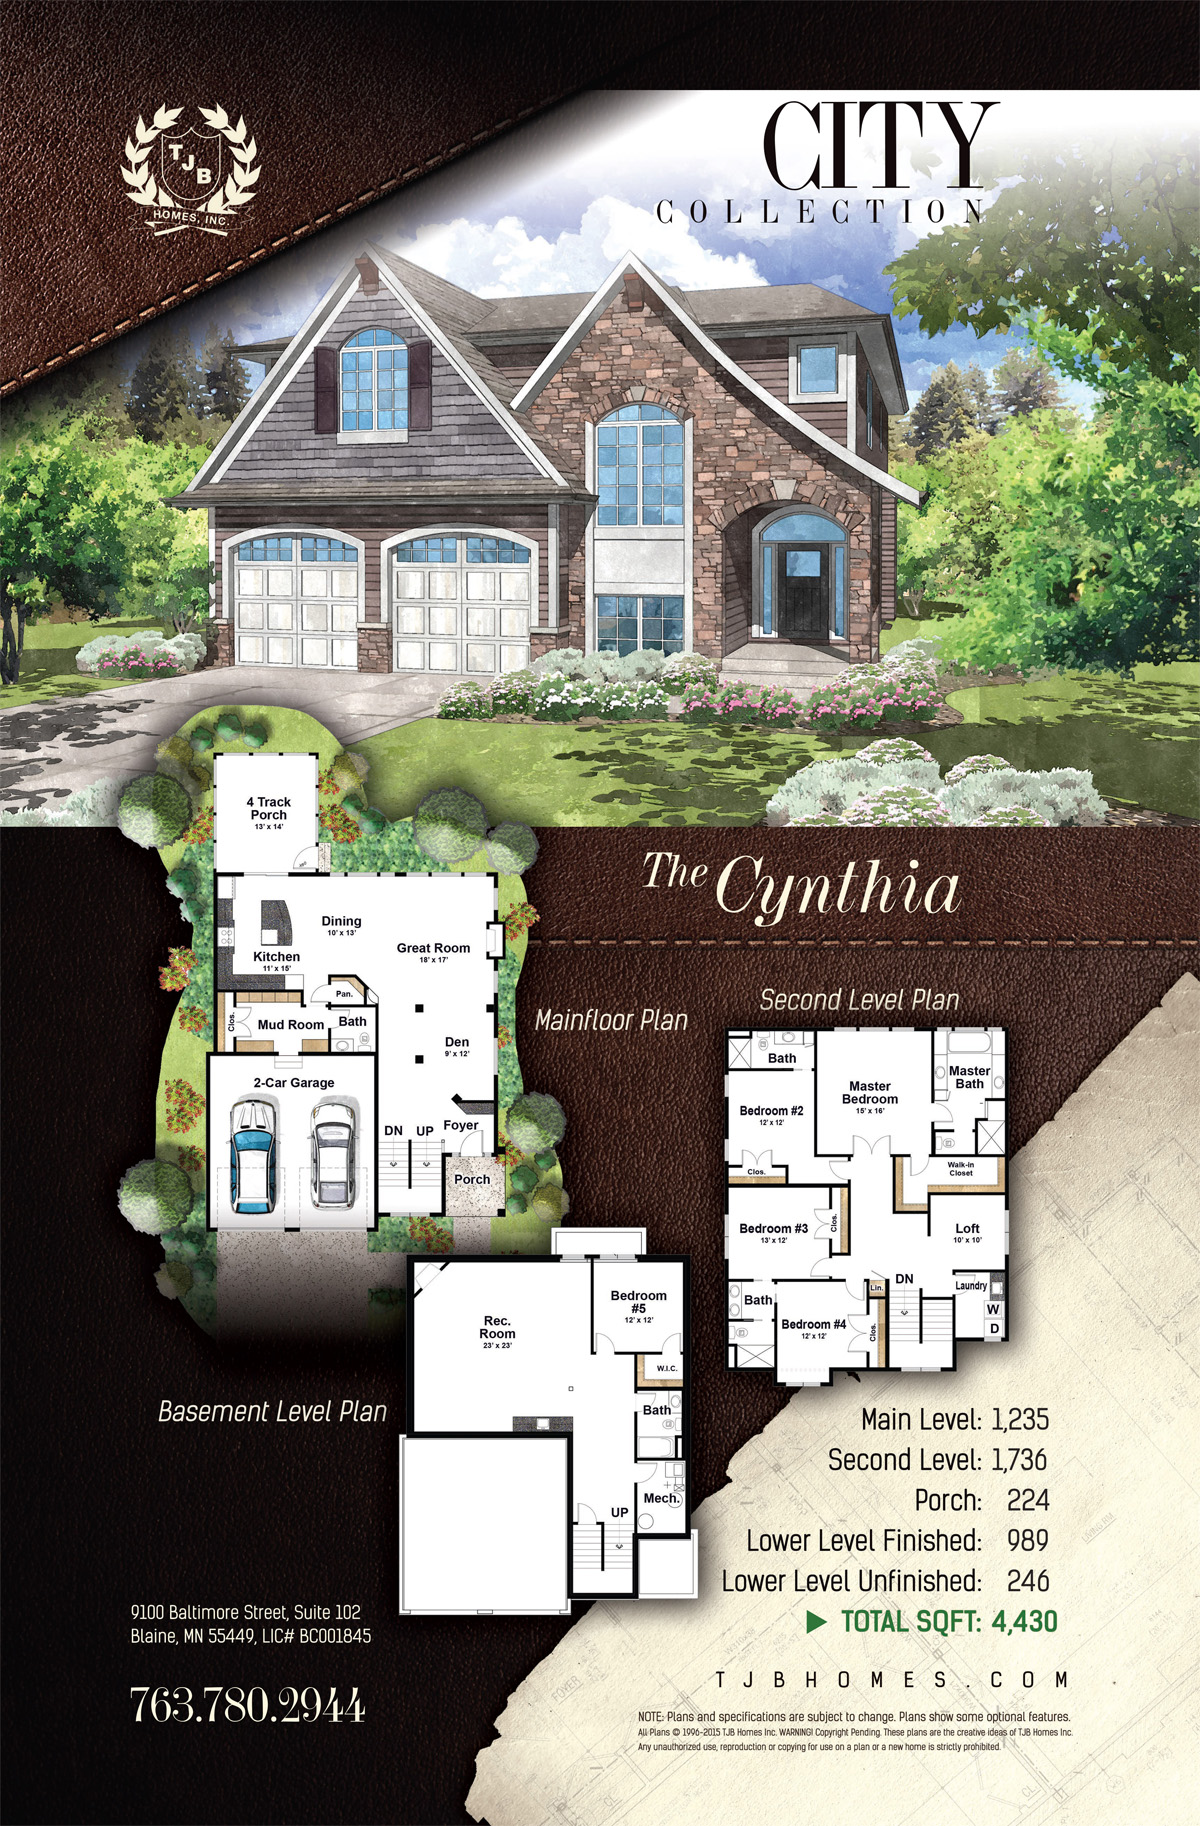 City Collection Home Plans - The Cynthia